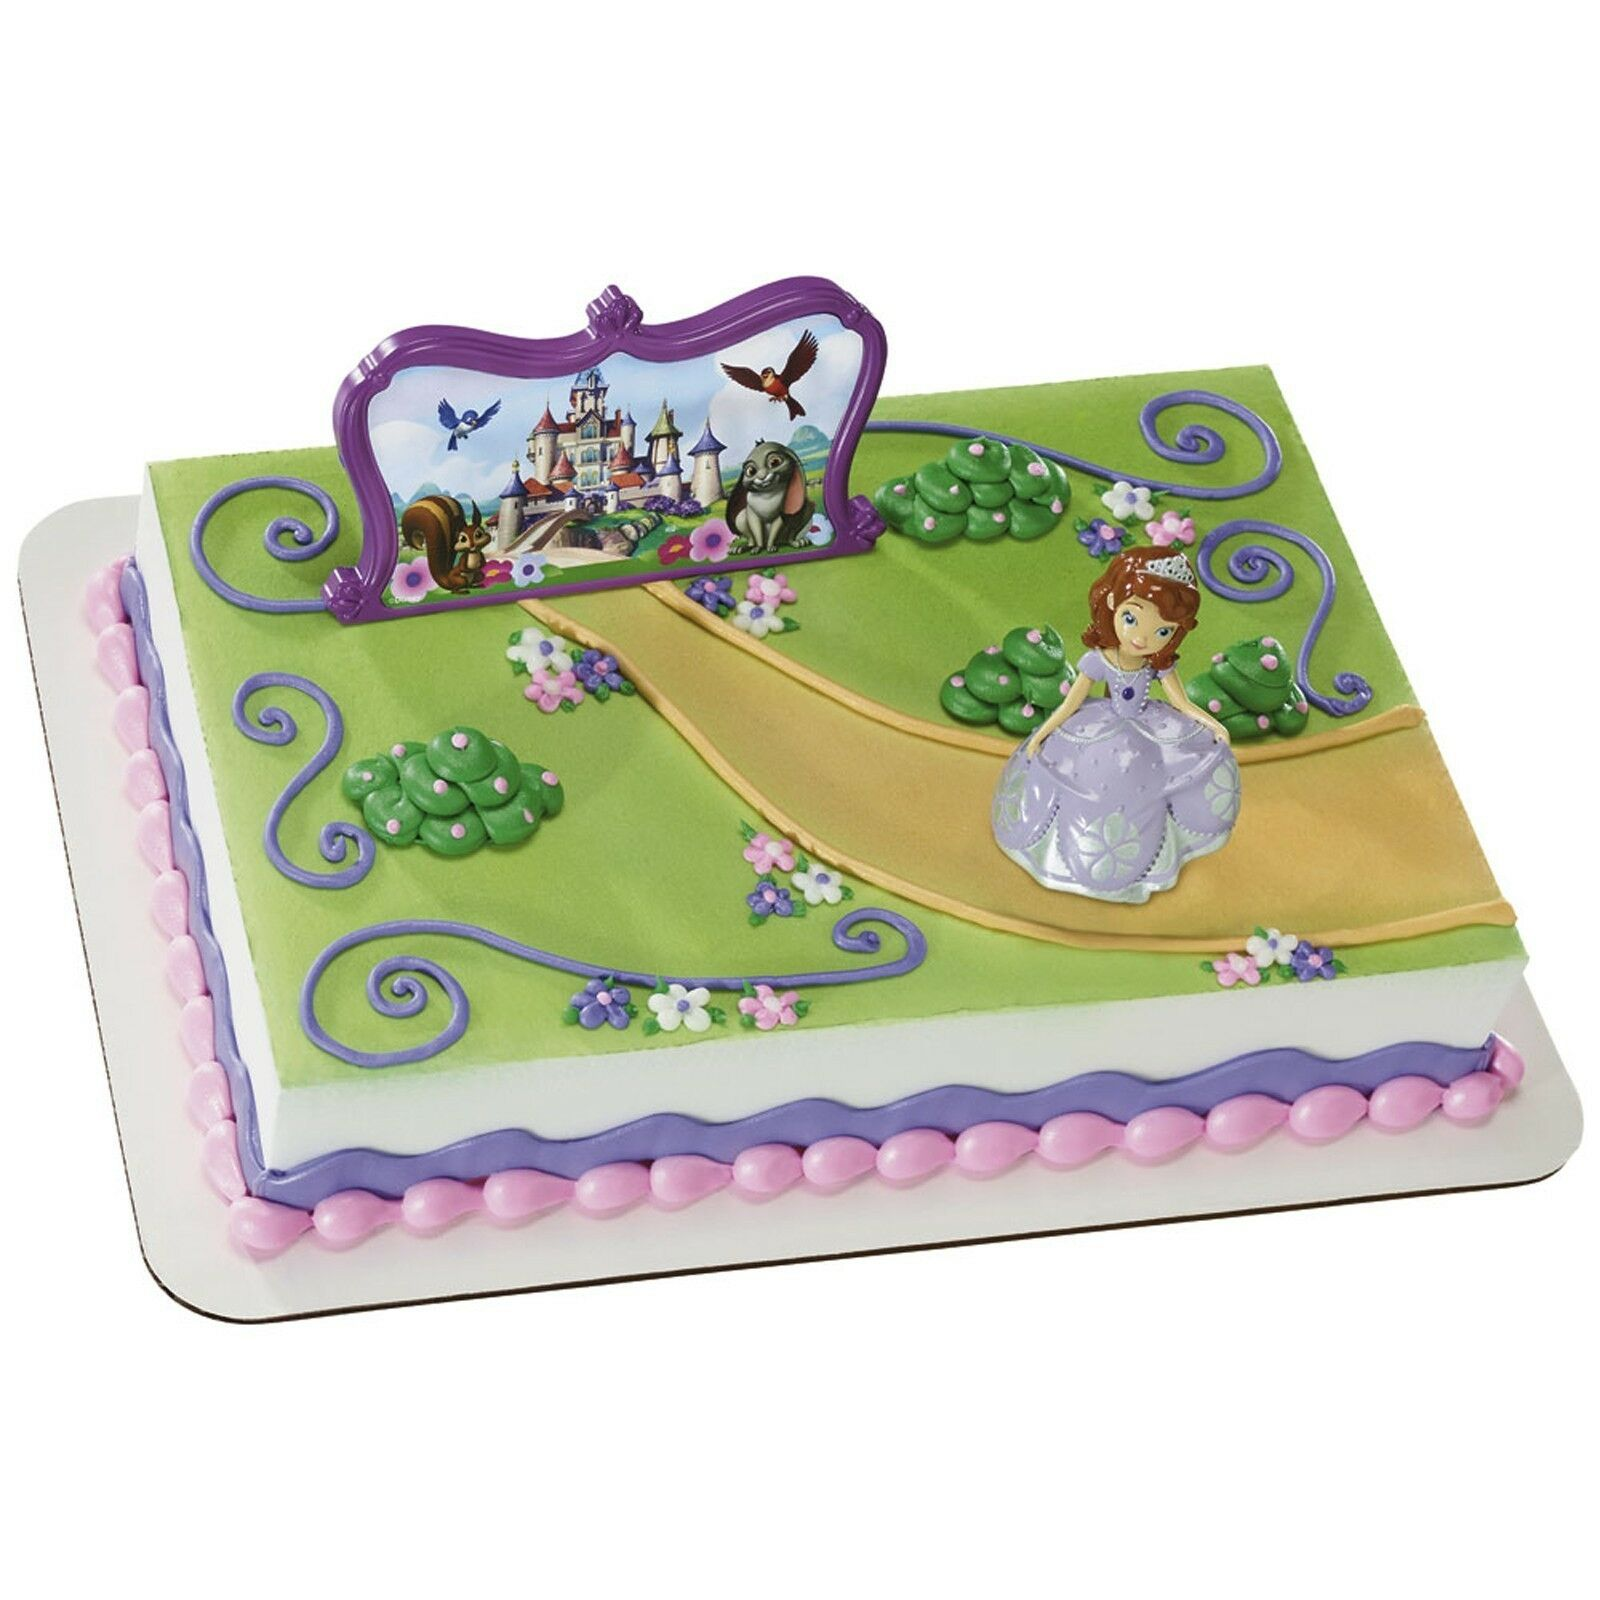 Air force cake decorations home furniture decors creating the - Disney Sofia The First Princess Castle Cake Topper Decorating Supplies Kit